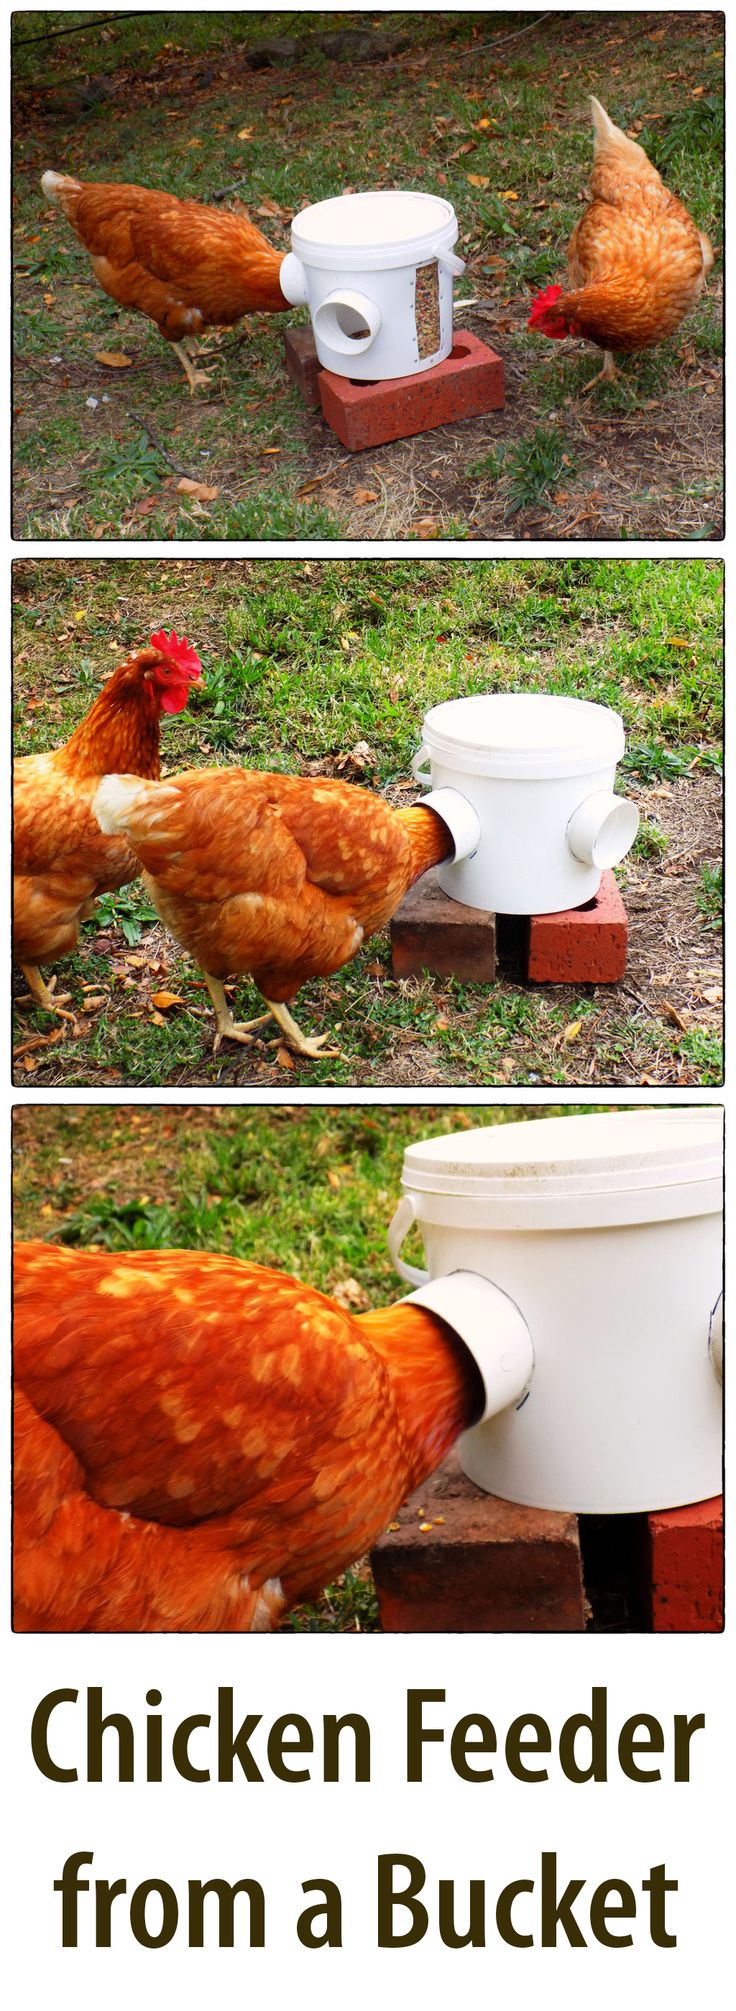 Traditional feeders make it easy for other animals to get at the food. This bucket feeder stops most animals from stealing food and it ensures minimal mess when your chickens eat.